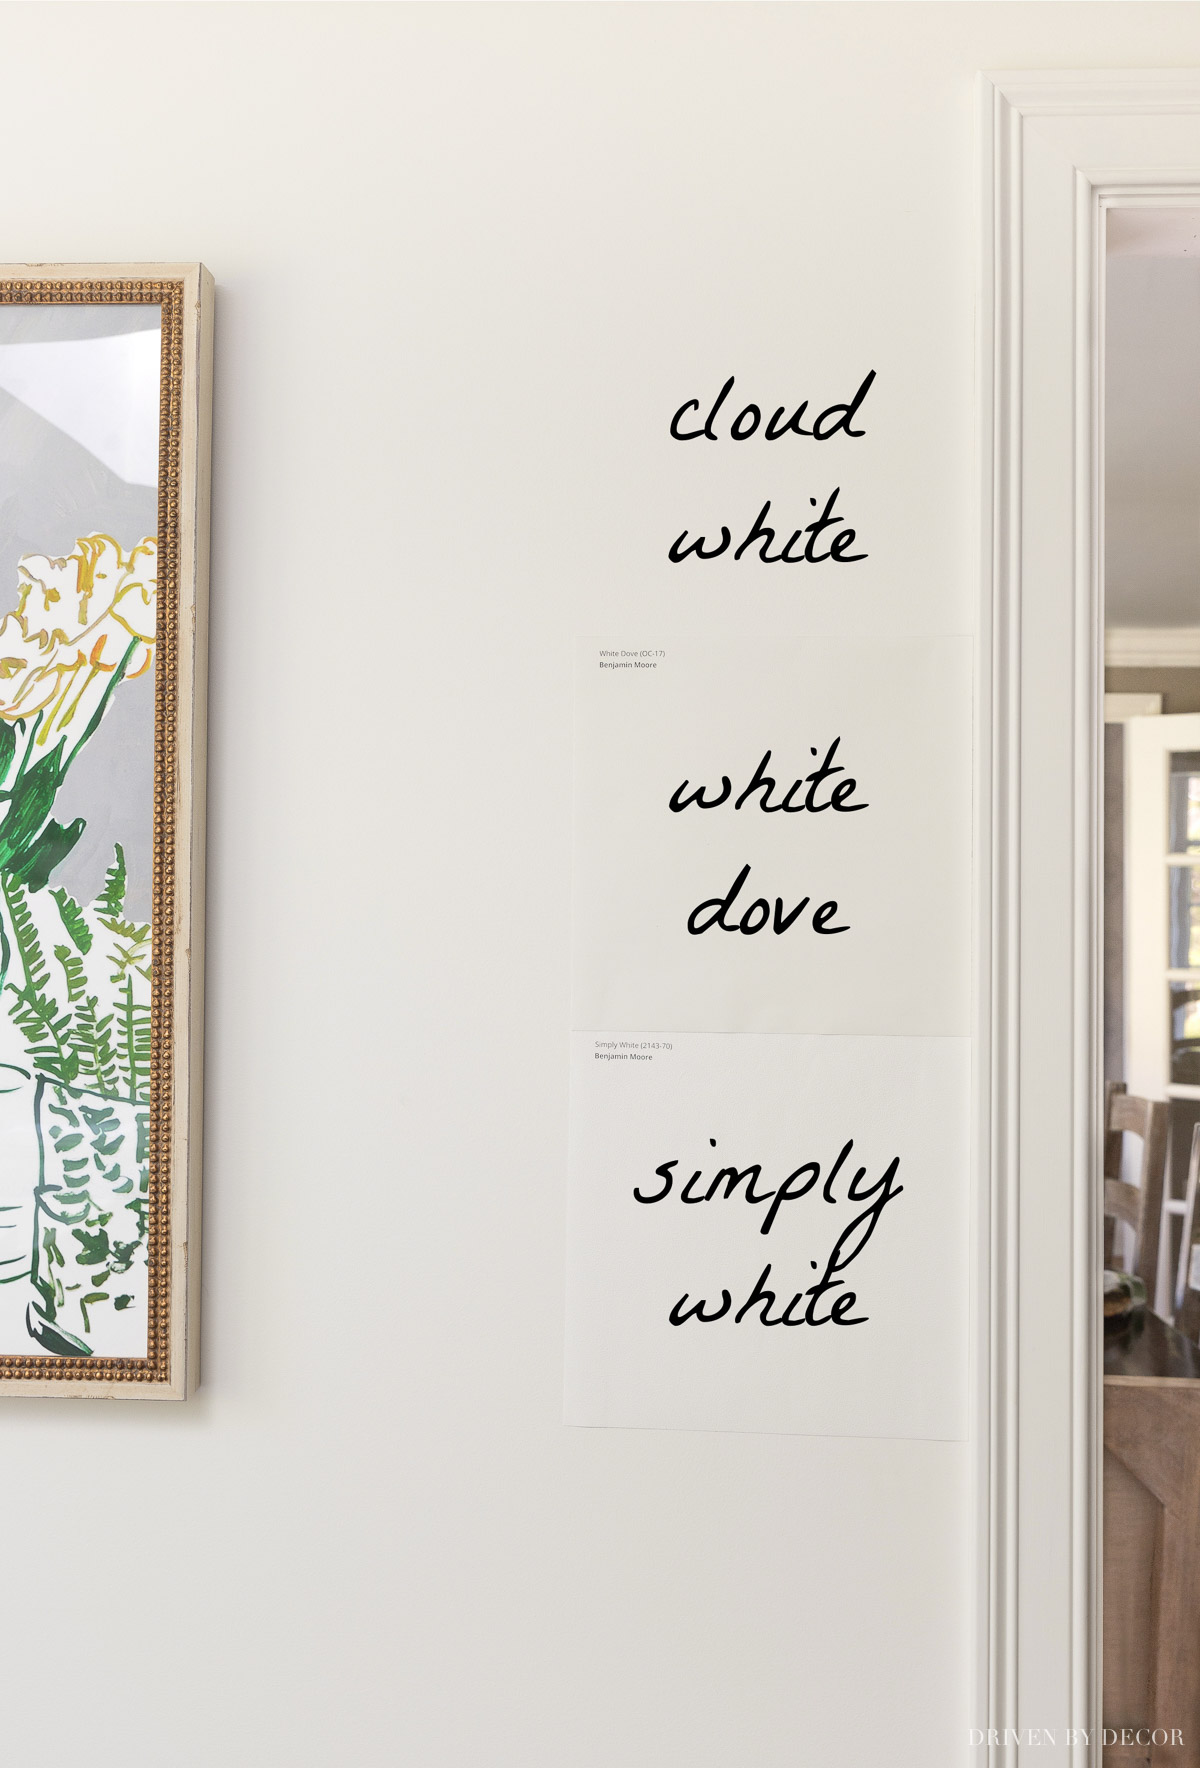 Benjamin Moore Cloud White vs. White Dove and Simply White paint colors